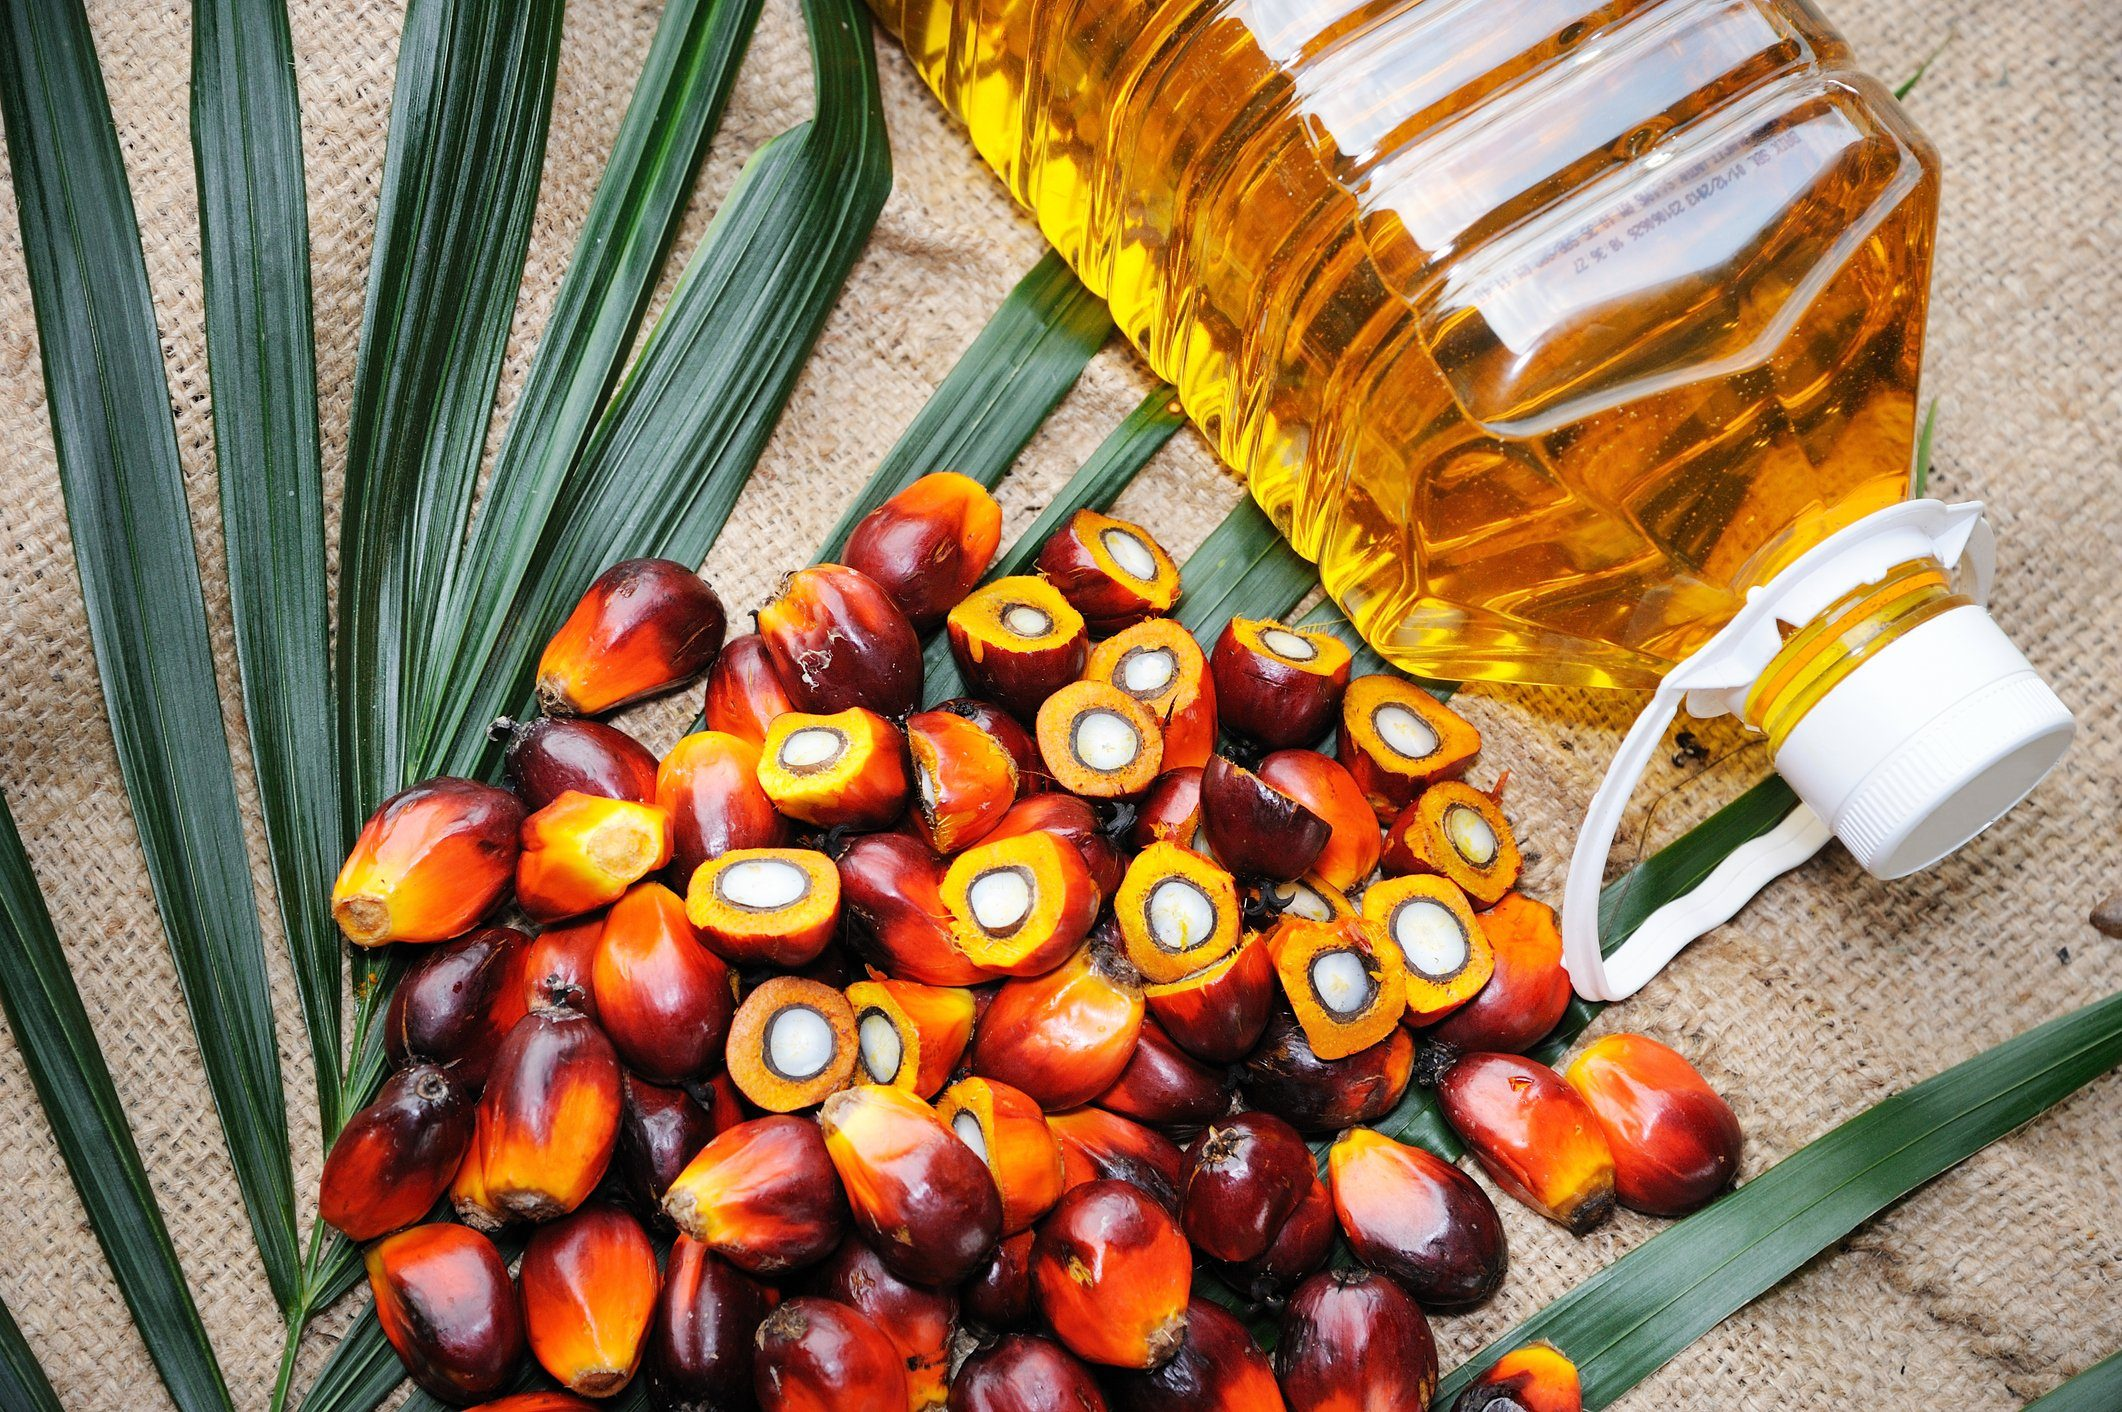 healthiest cooking oils | Fresh oil palm fruits